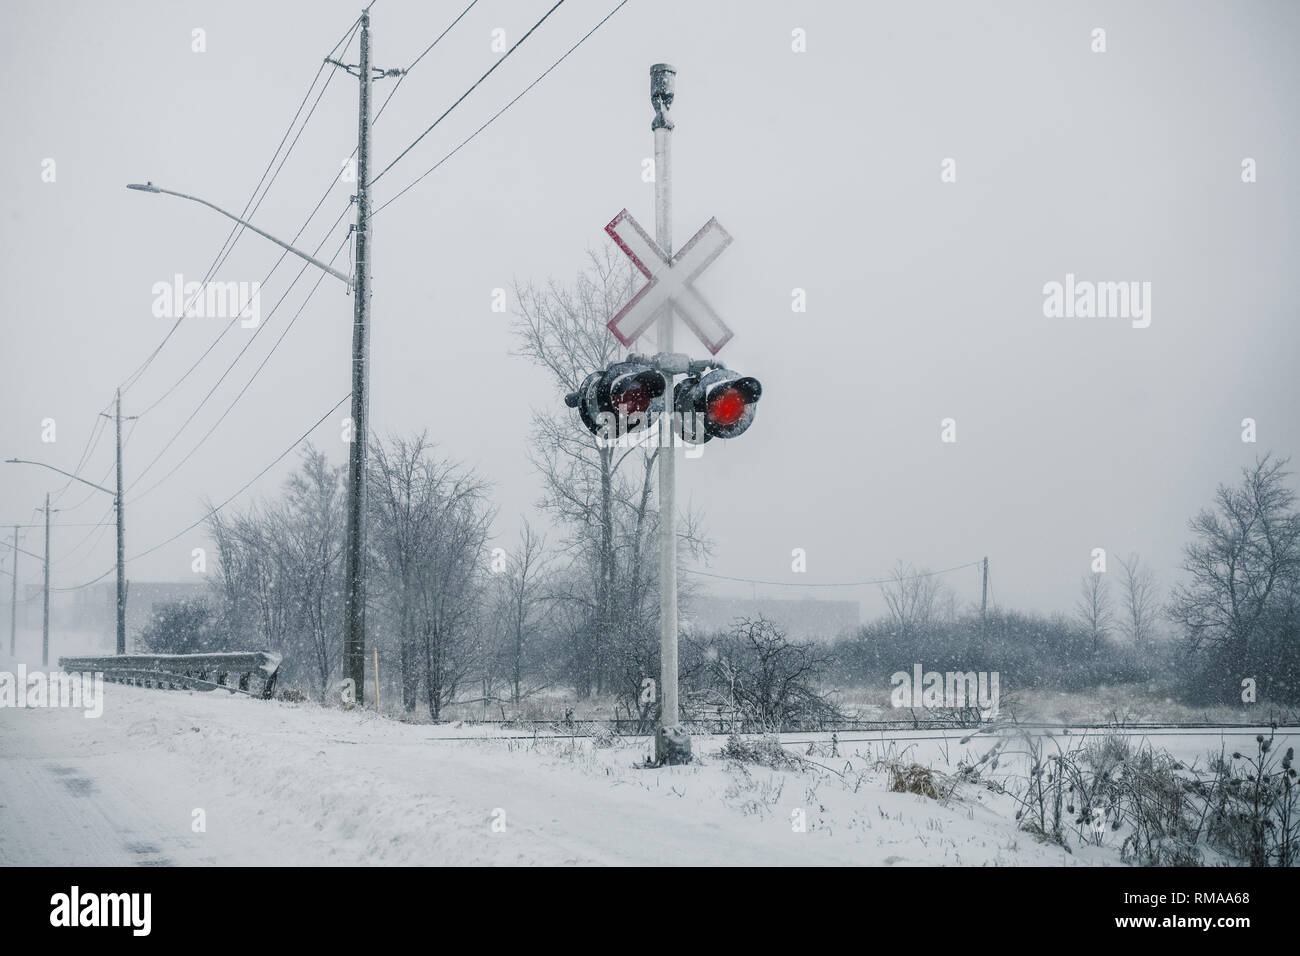 Winter, crossing railway sign and lights. - Stock Image